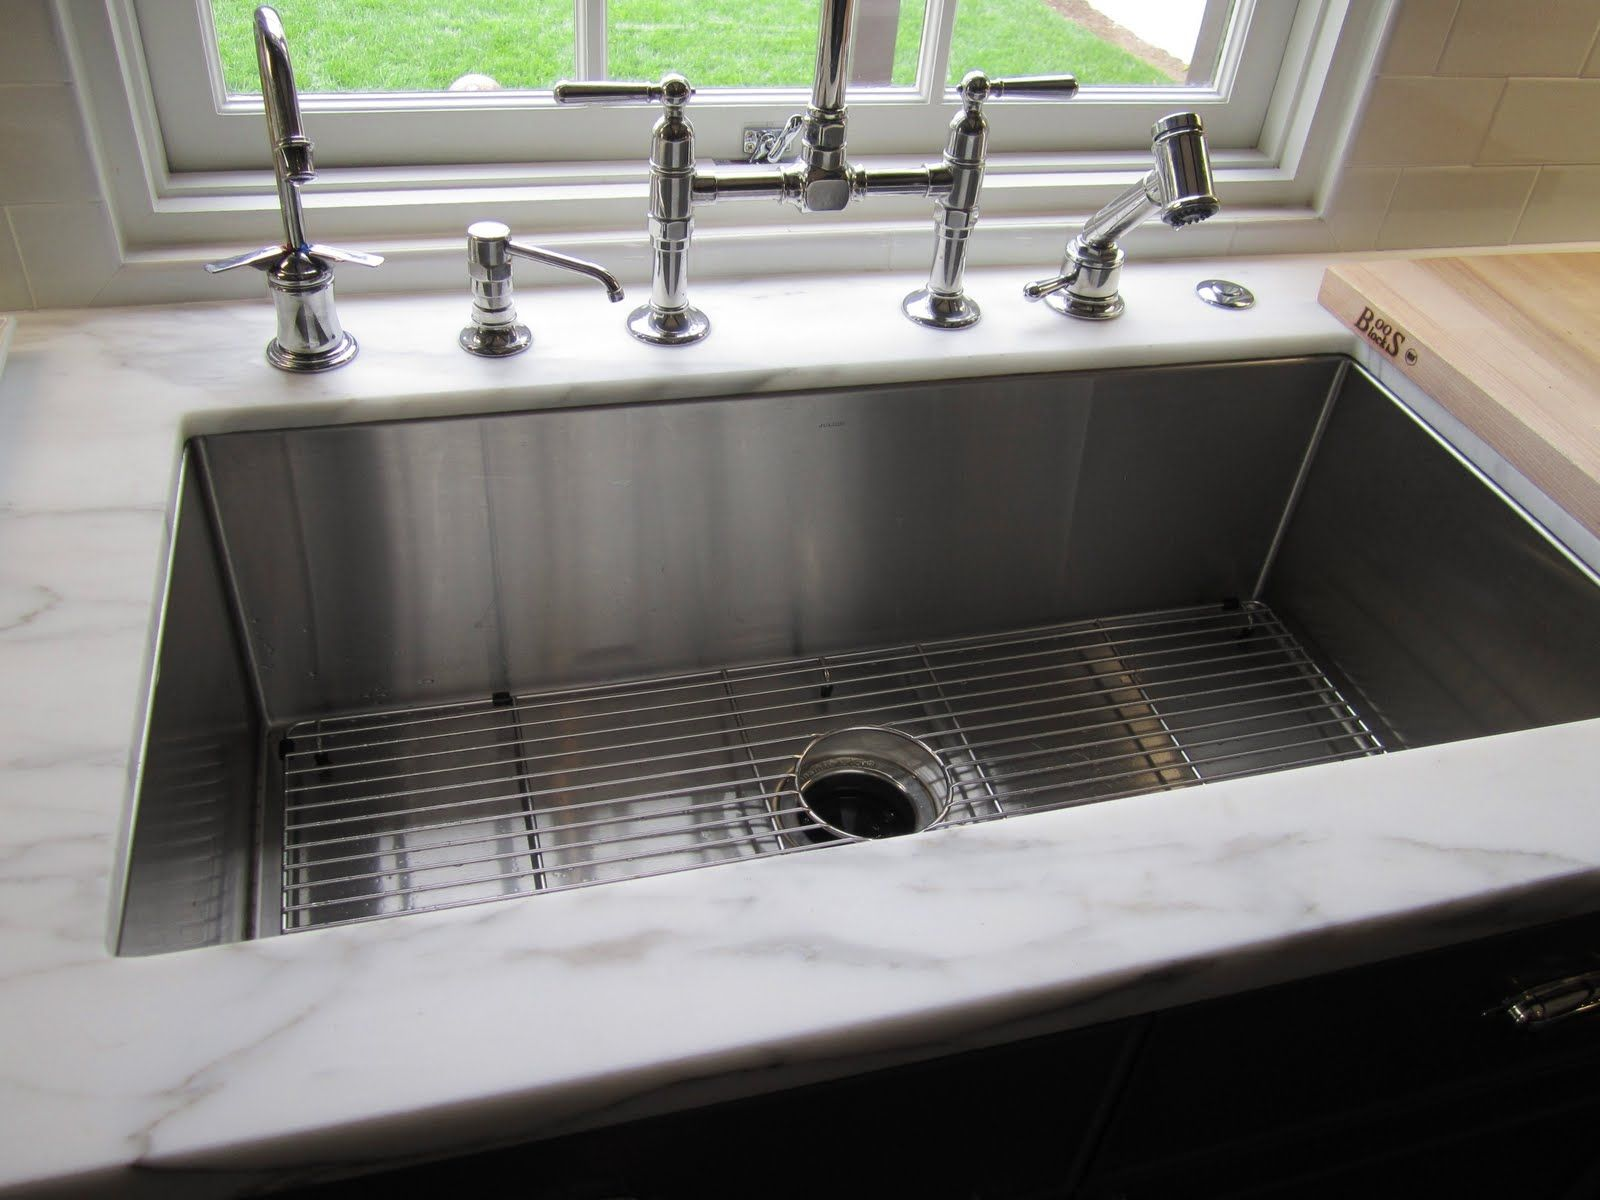 steel stainless image zs urban double pacemaker elkay sink bowl place sinks congregation gourmet kitchen